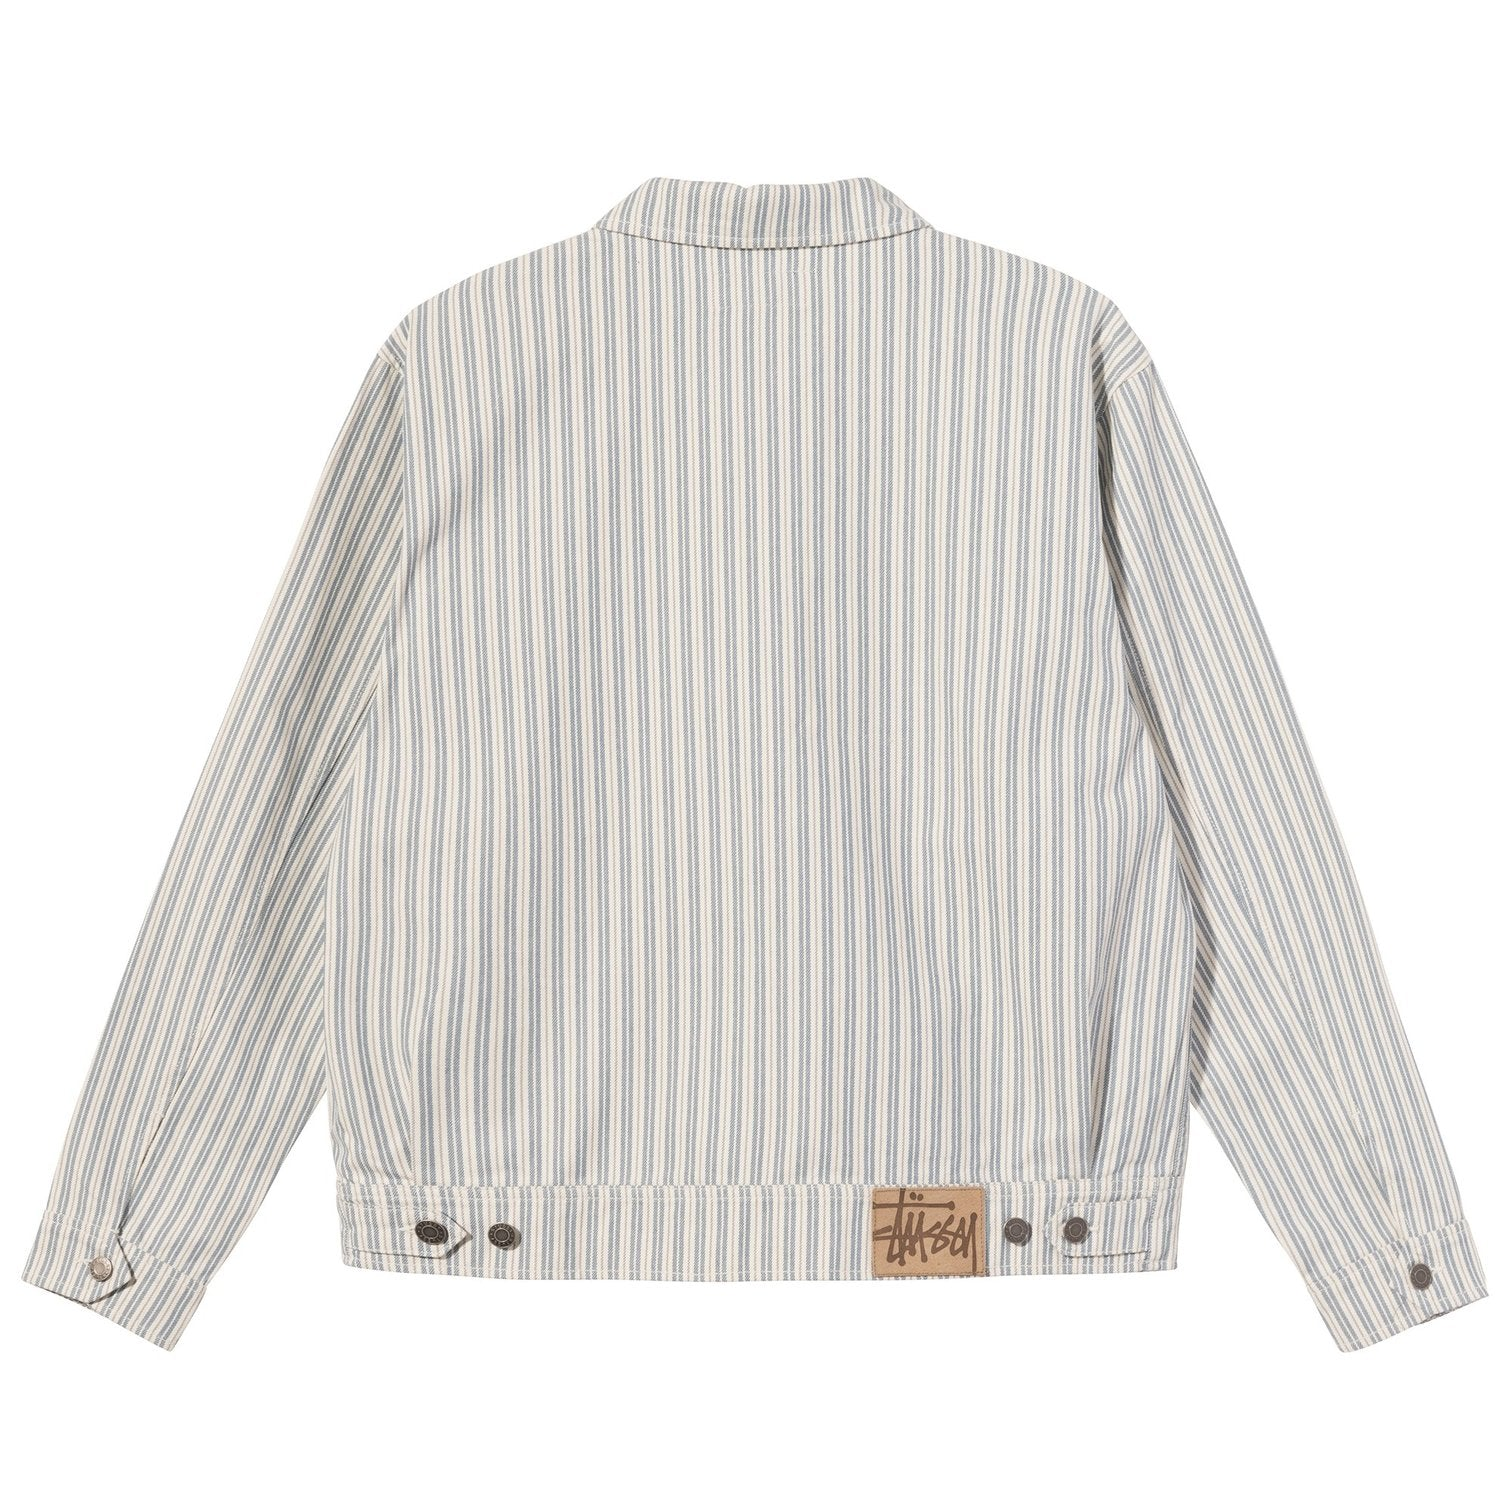 Stripe Garage Jacket